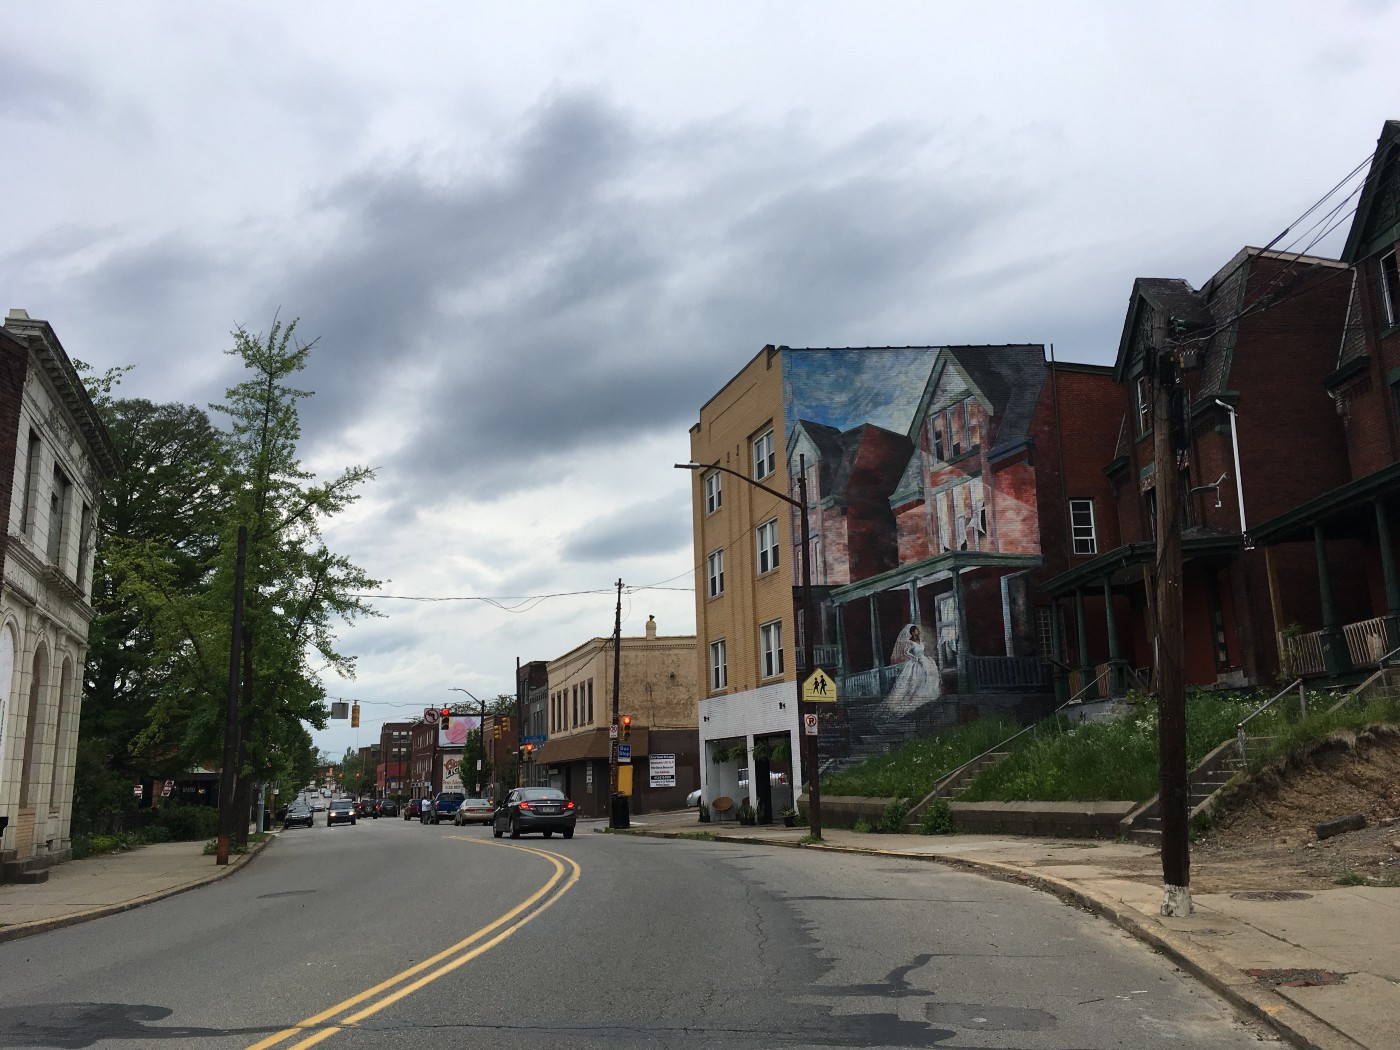 Photo of Penn Ave in Pittsburgh on an overcast day with mural of black bride in white dress on old brick building